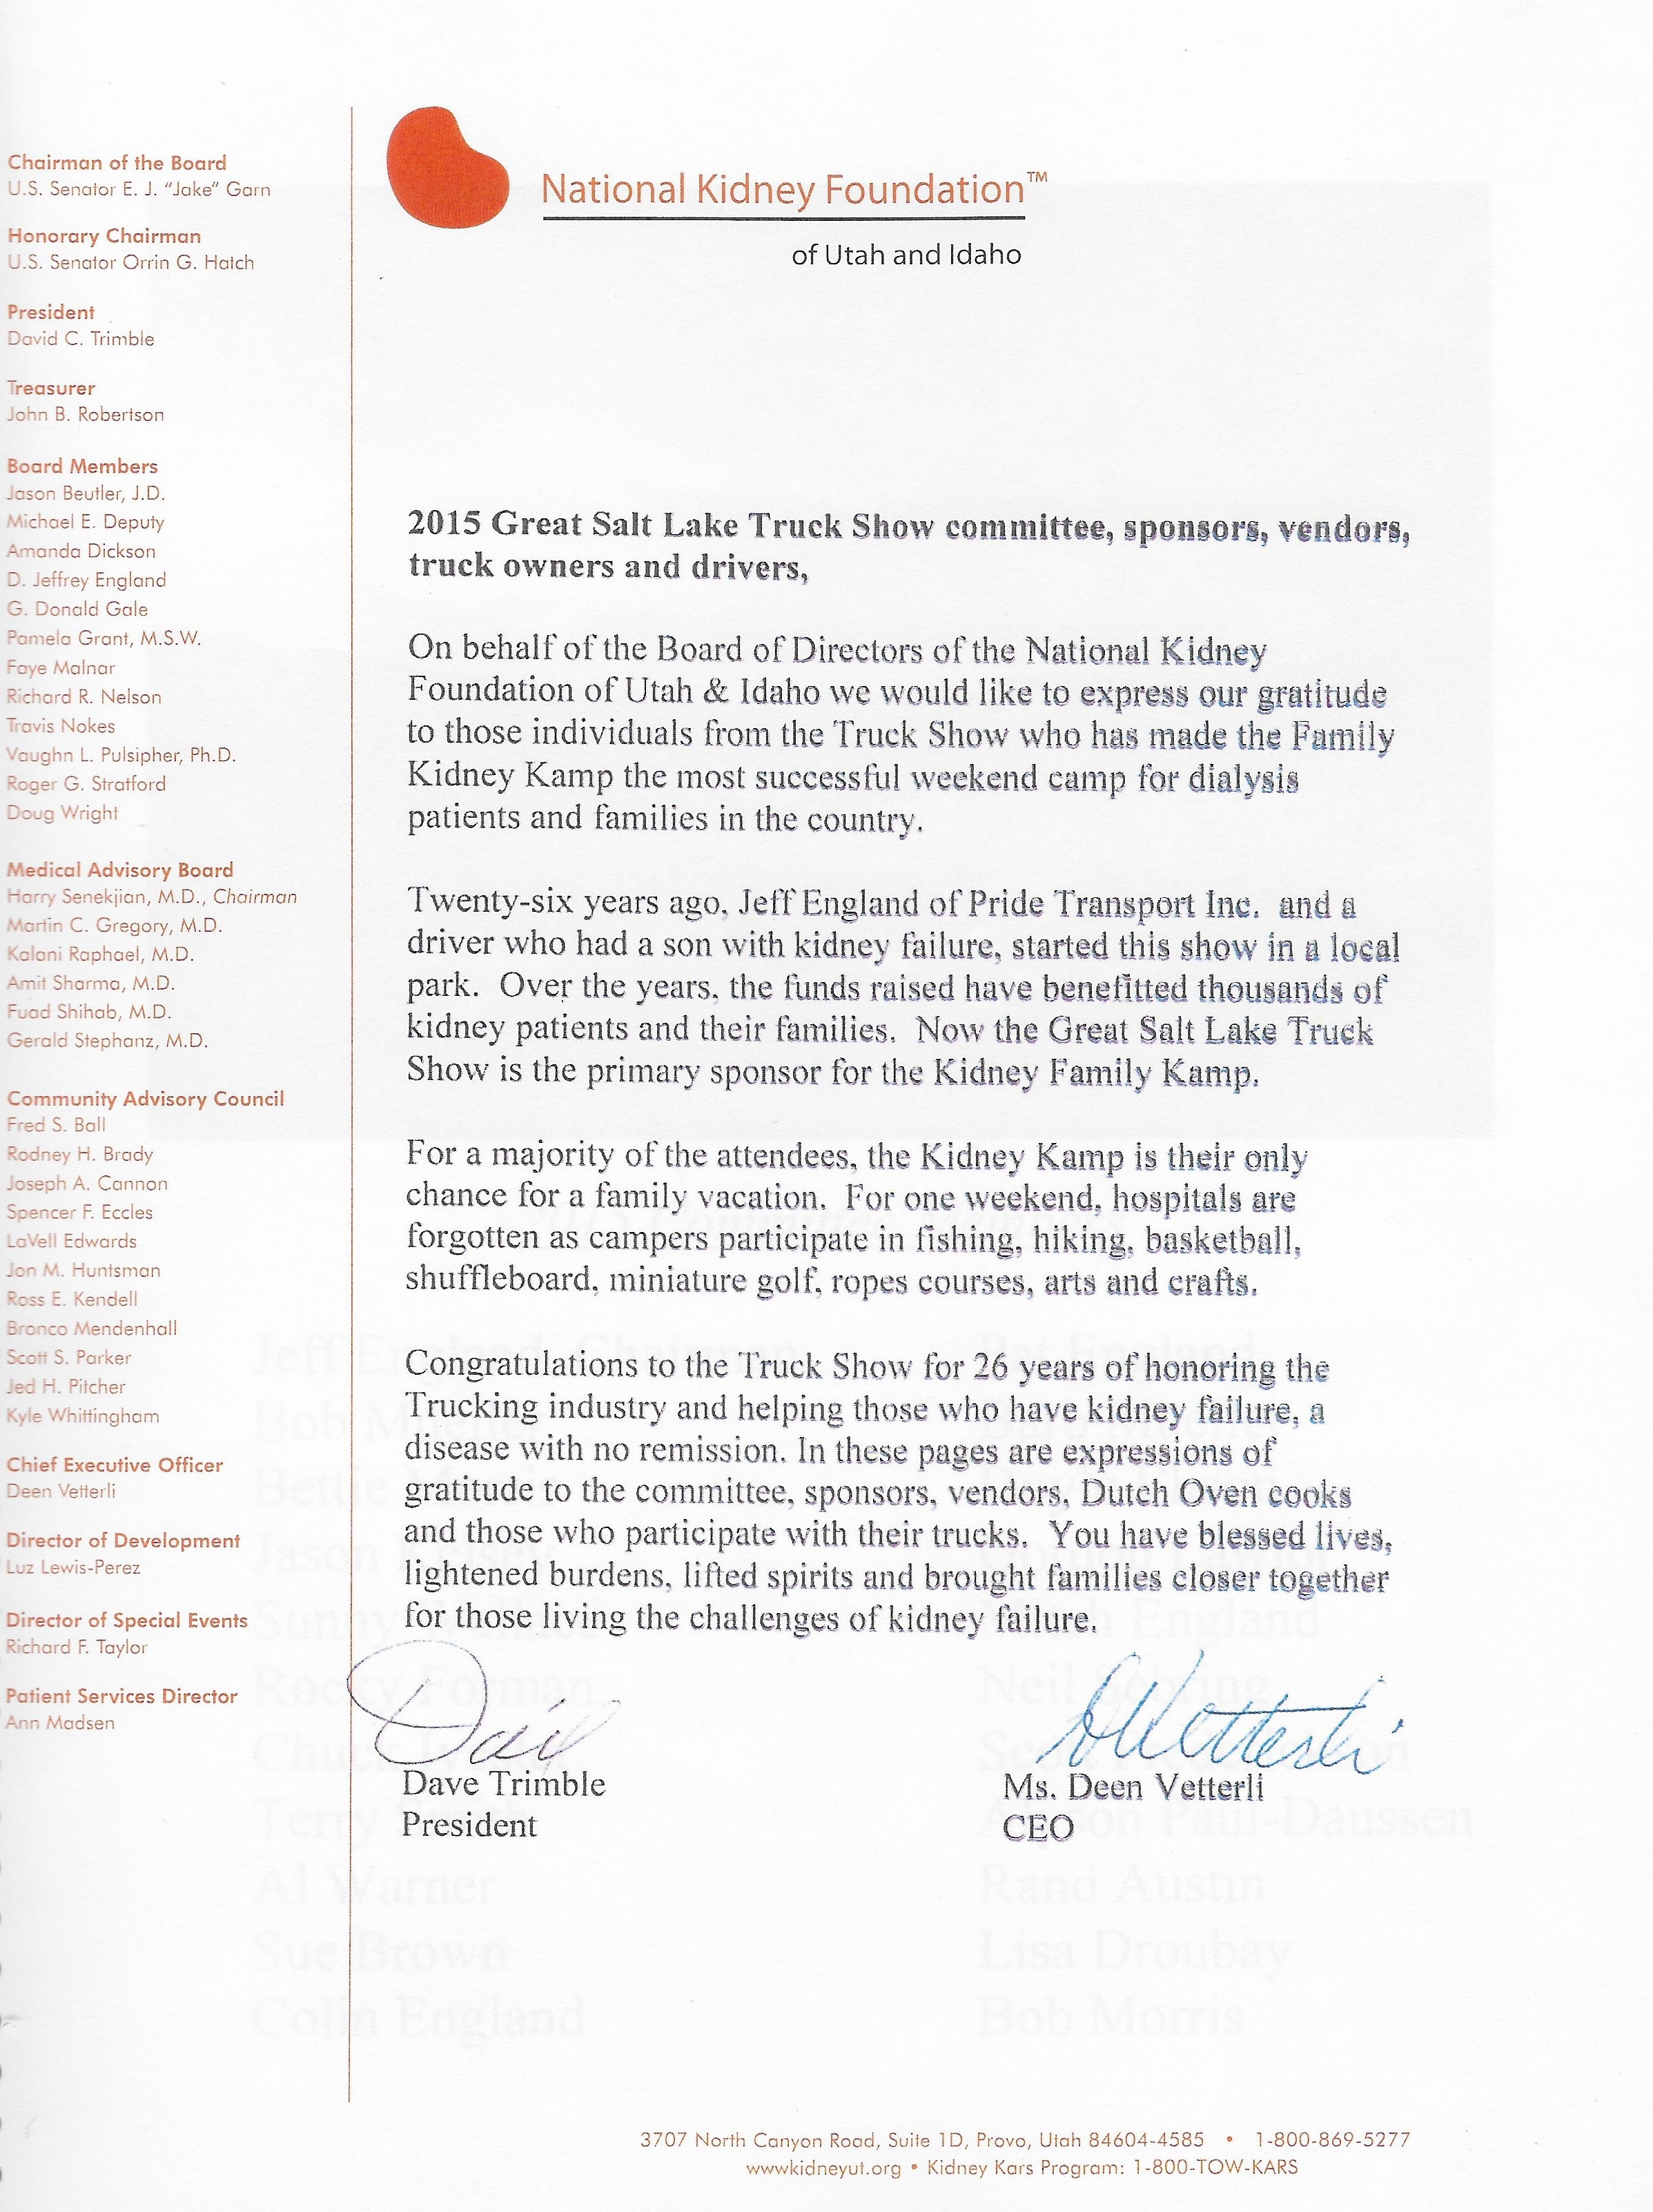 NKF thank you letter